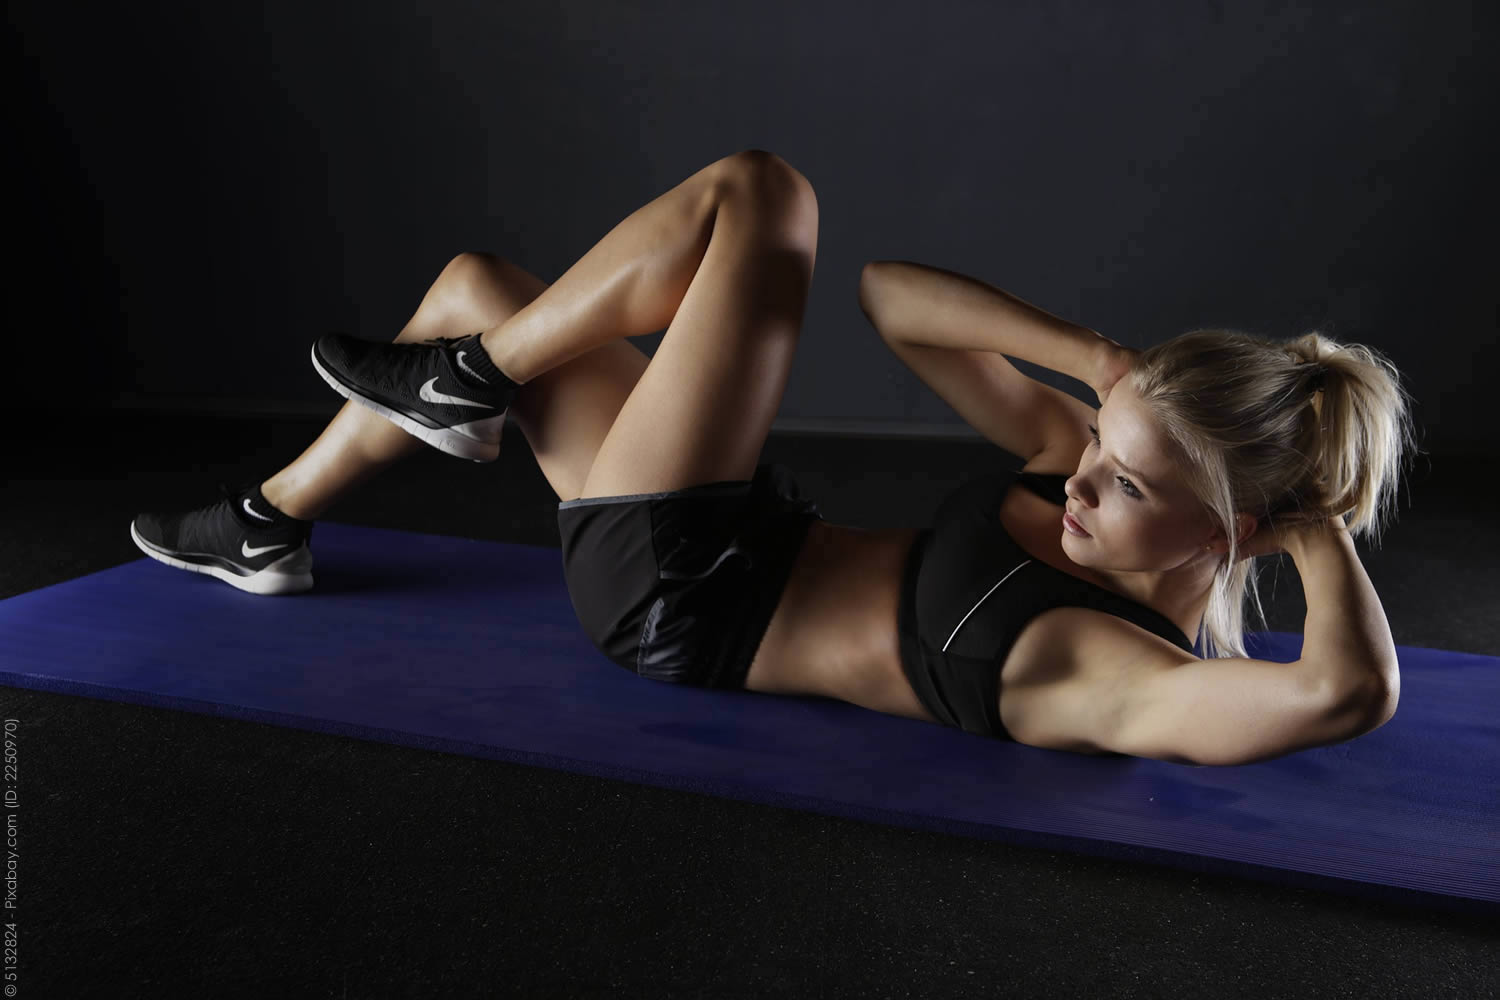 Fitness Models » Casting & Modelagentur für Fitness Models | Model-BB.de